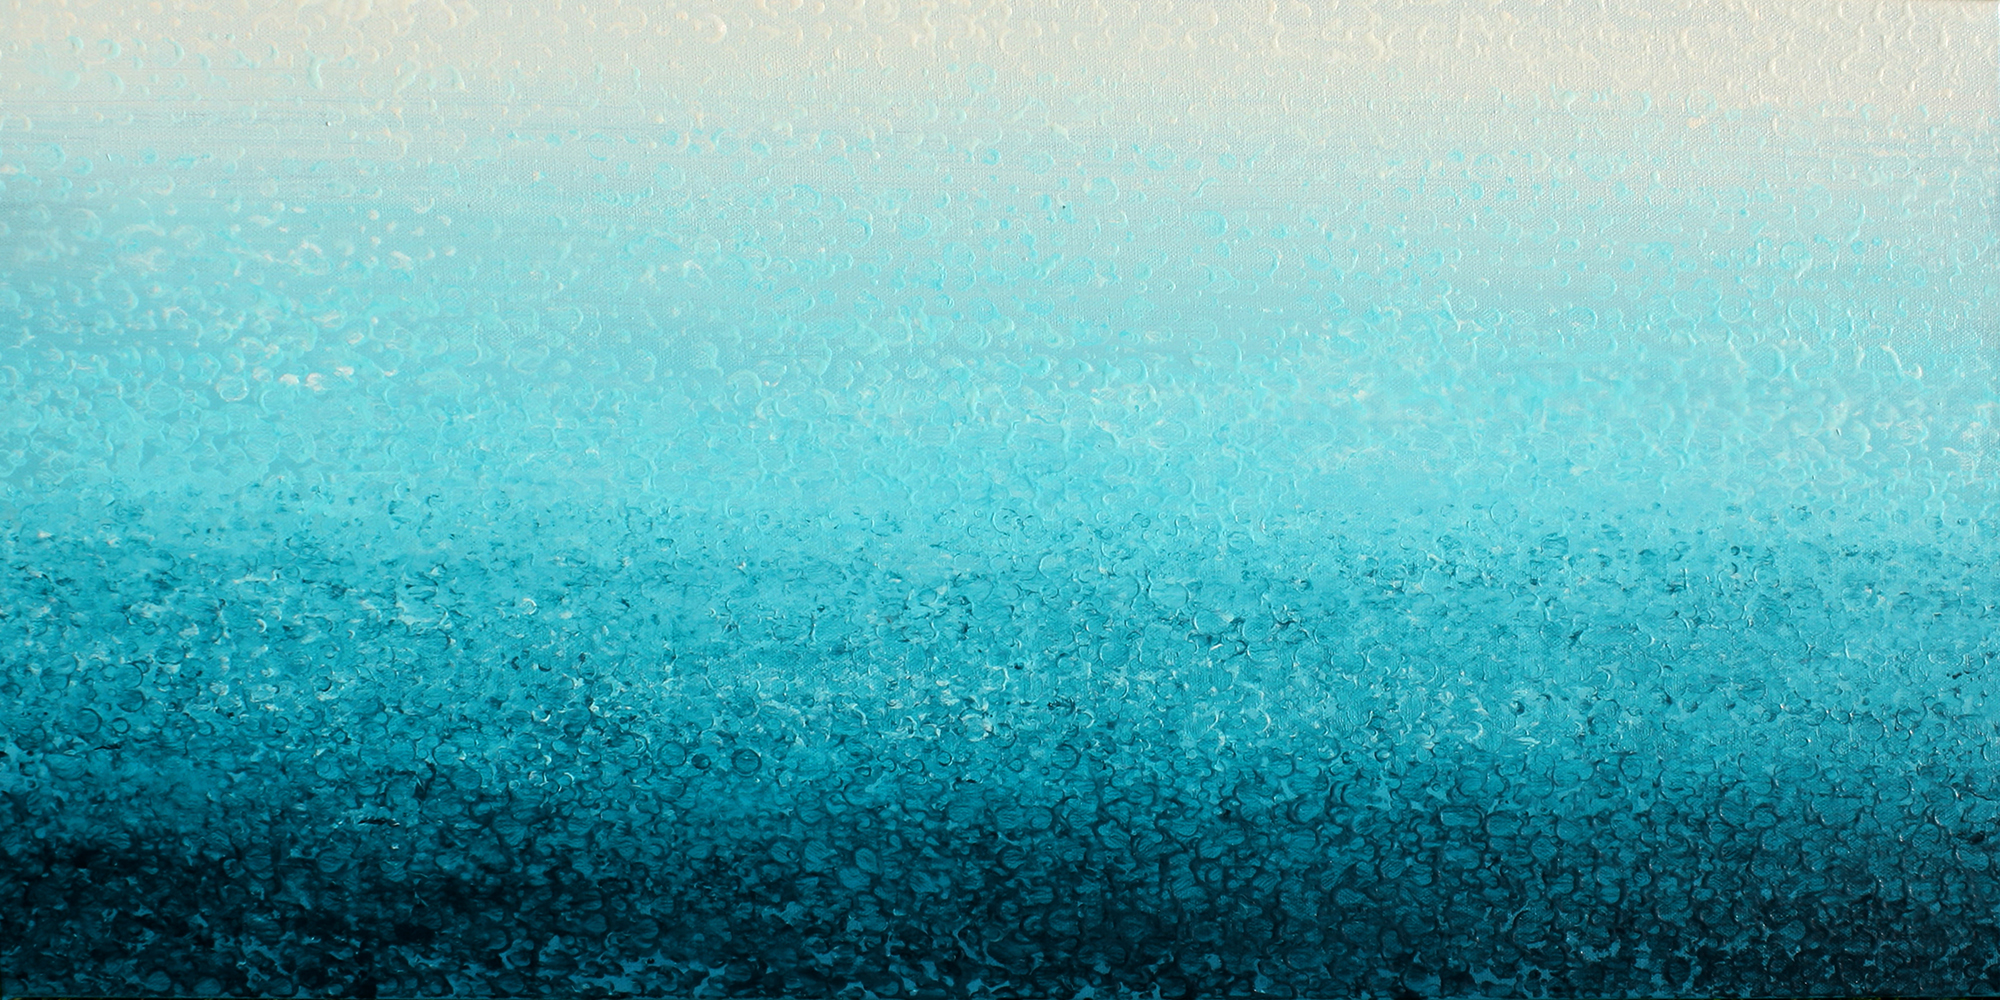 TurquoiseAbstracted_30x15_1